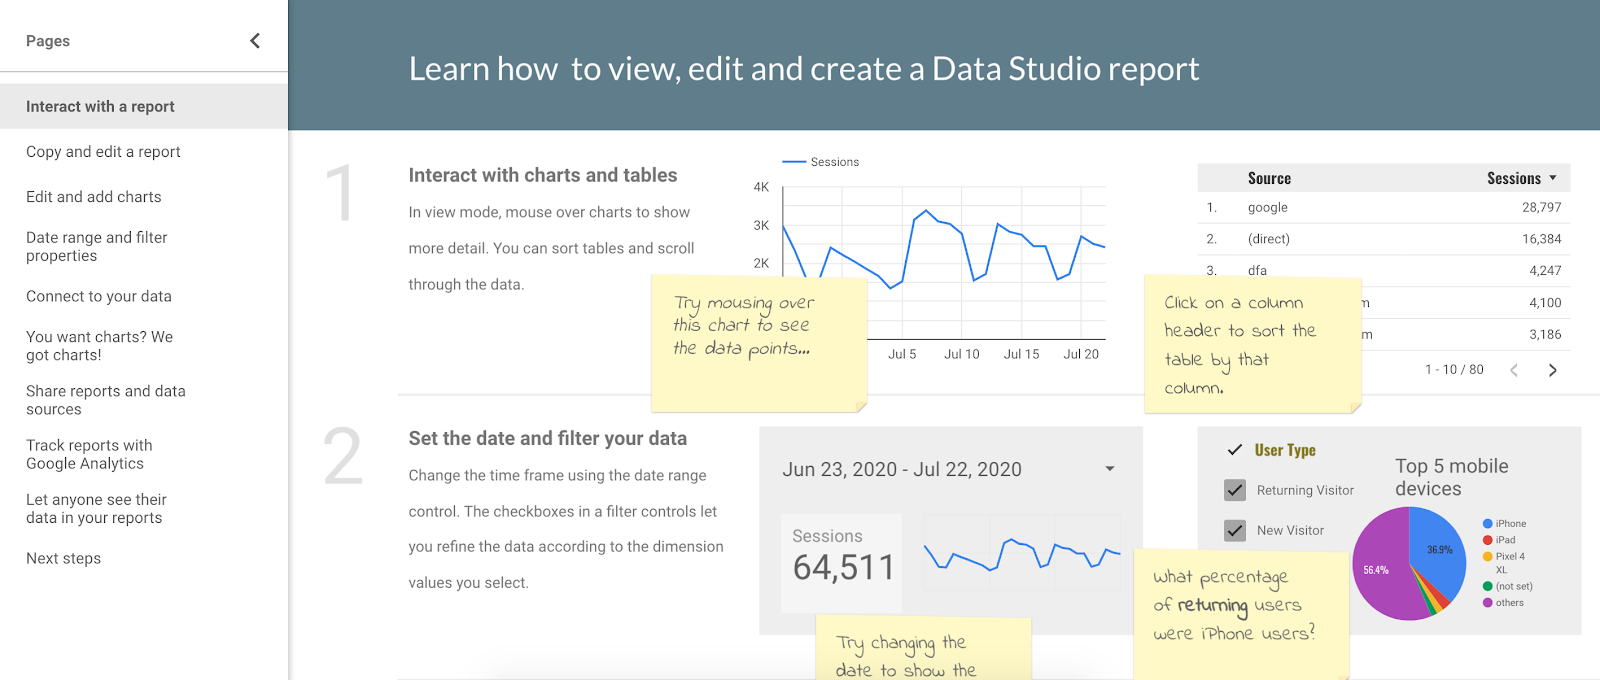 Screenshot of the Google Data Studio interface and tutorial